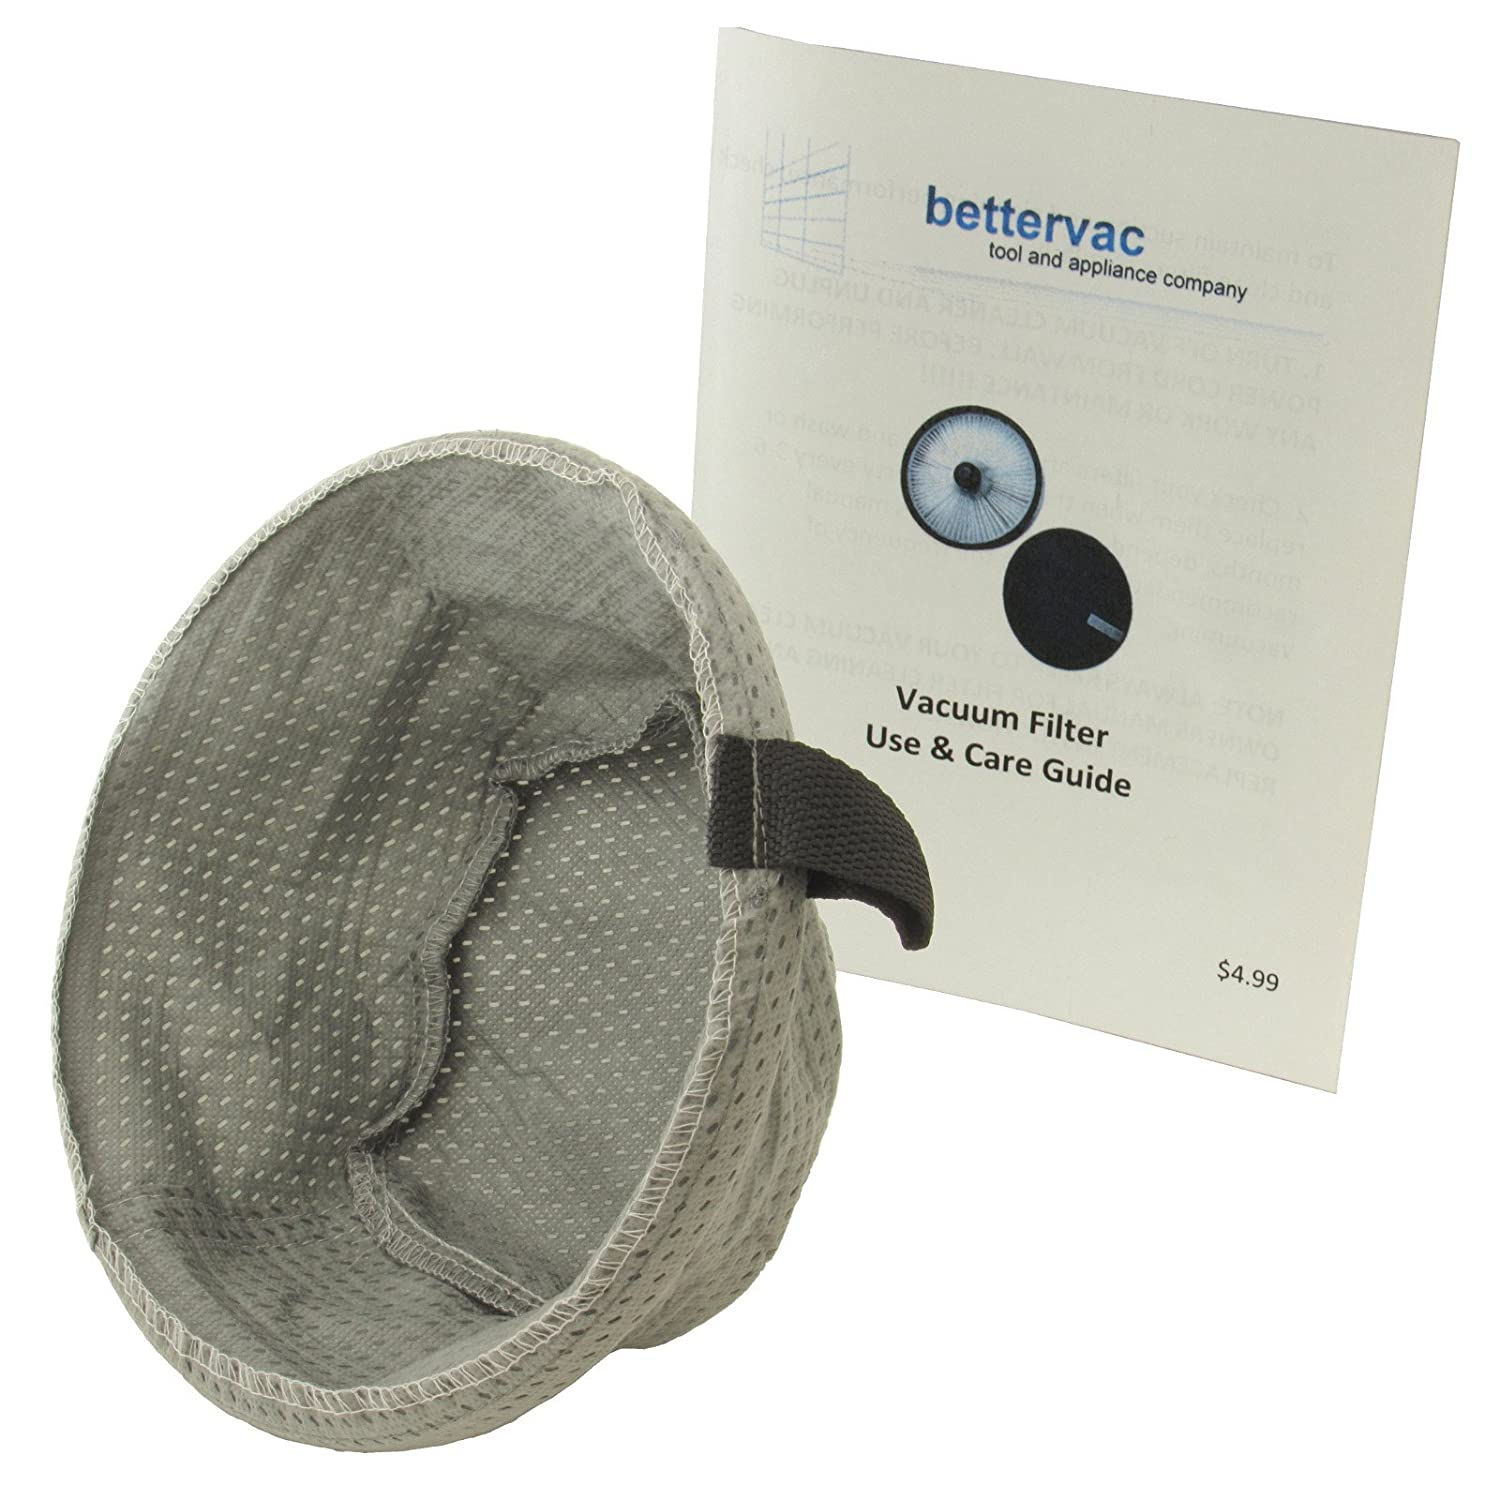 Bissell Garage Pro Wet Dry Vacuum Filter #2030166 Bundled With Use & Care Guide